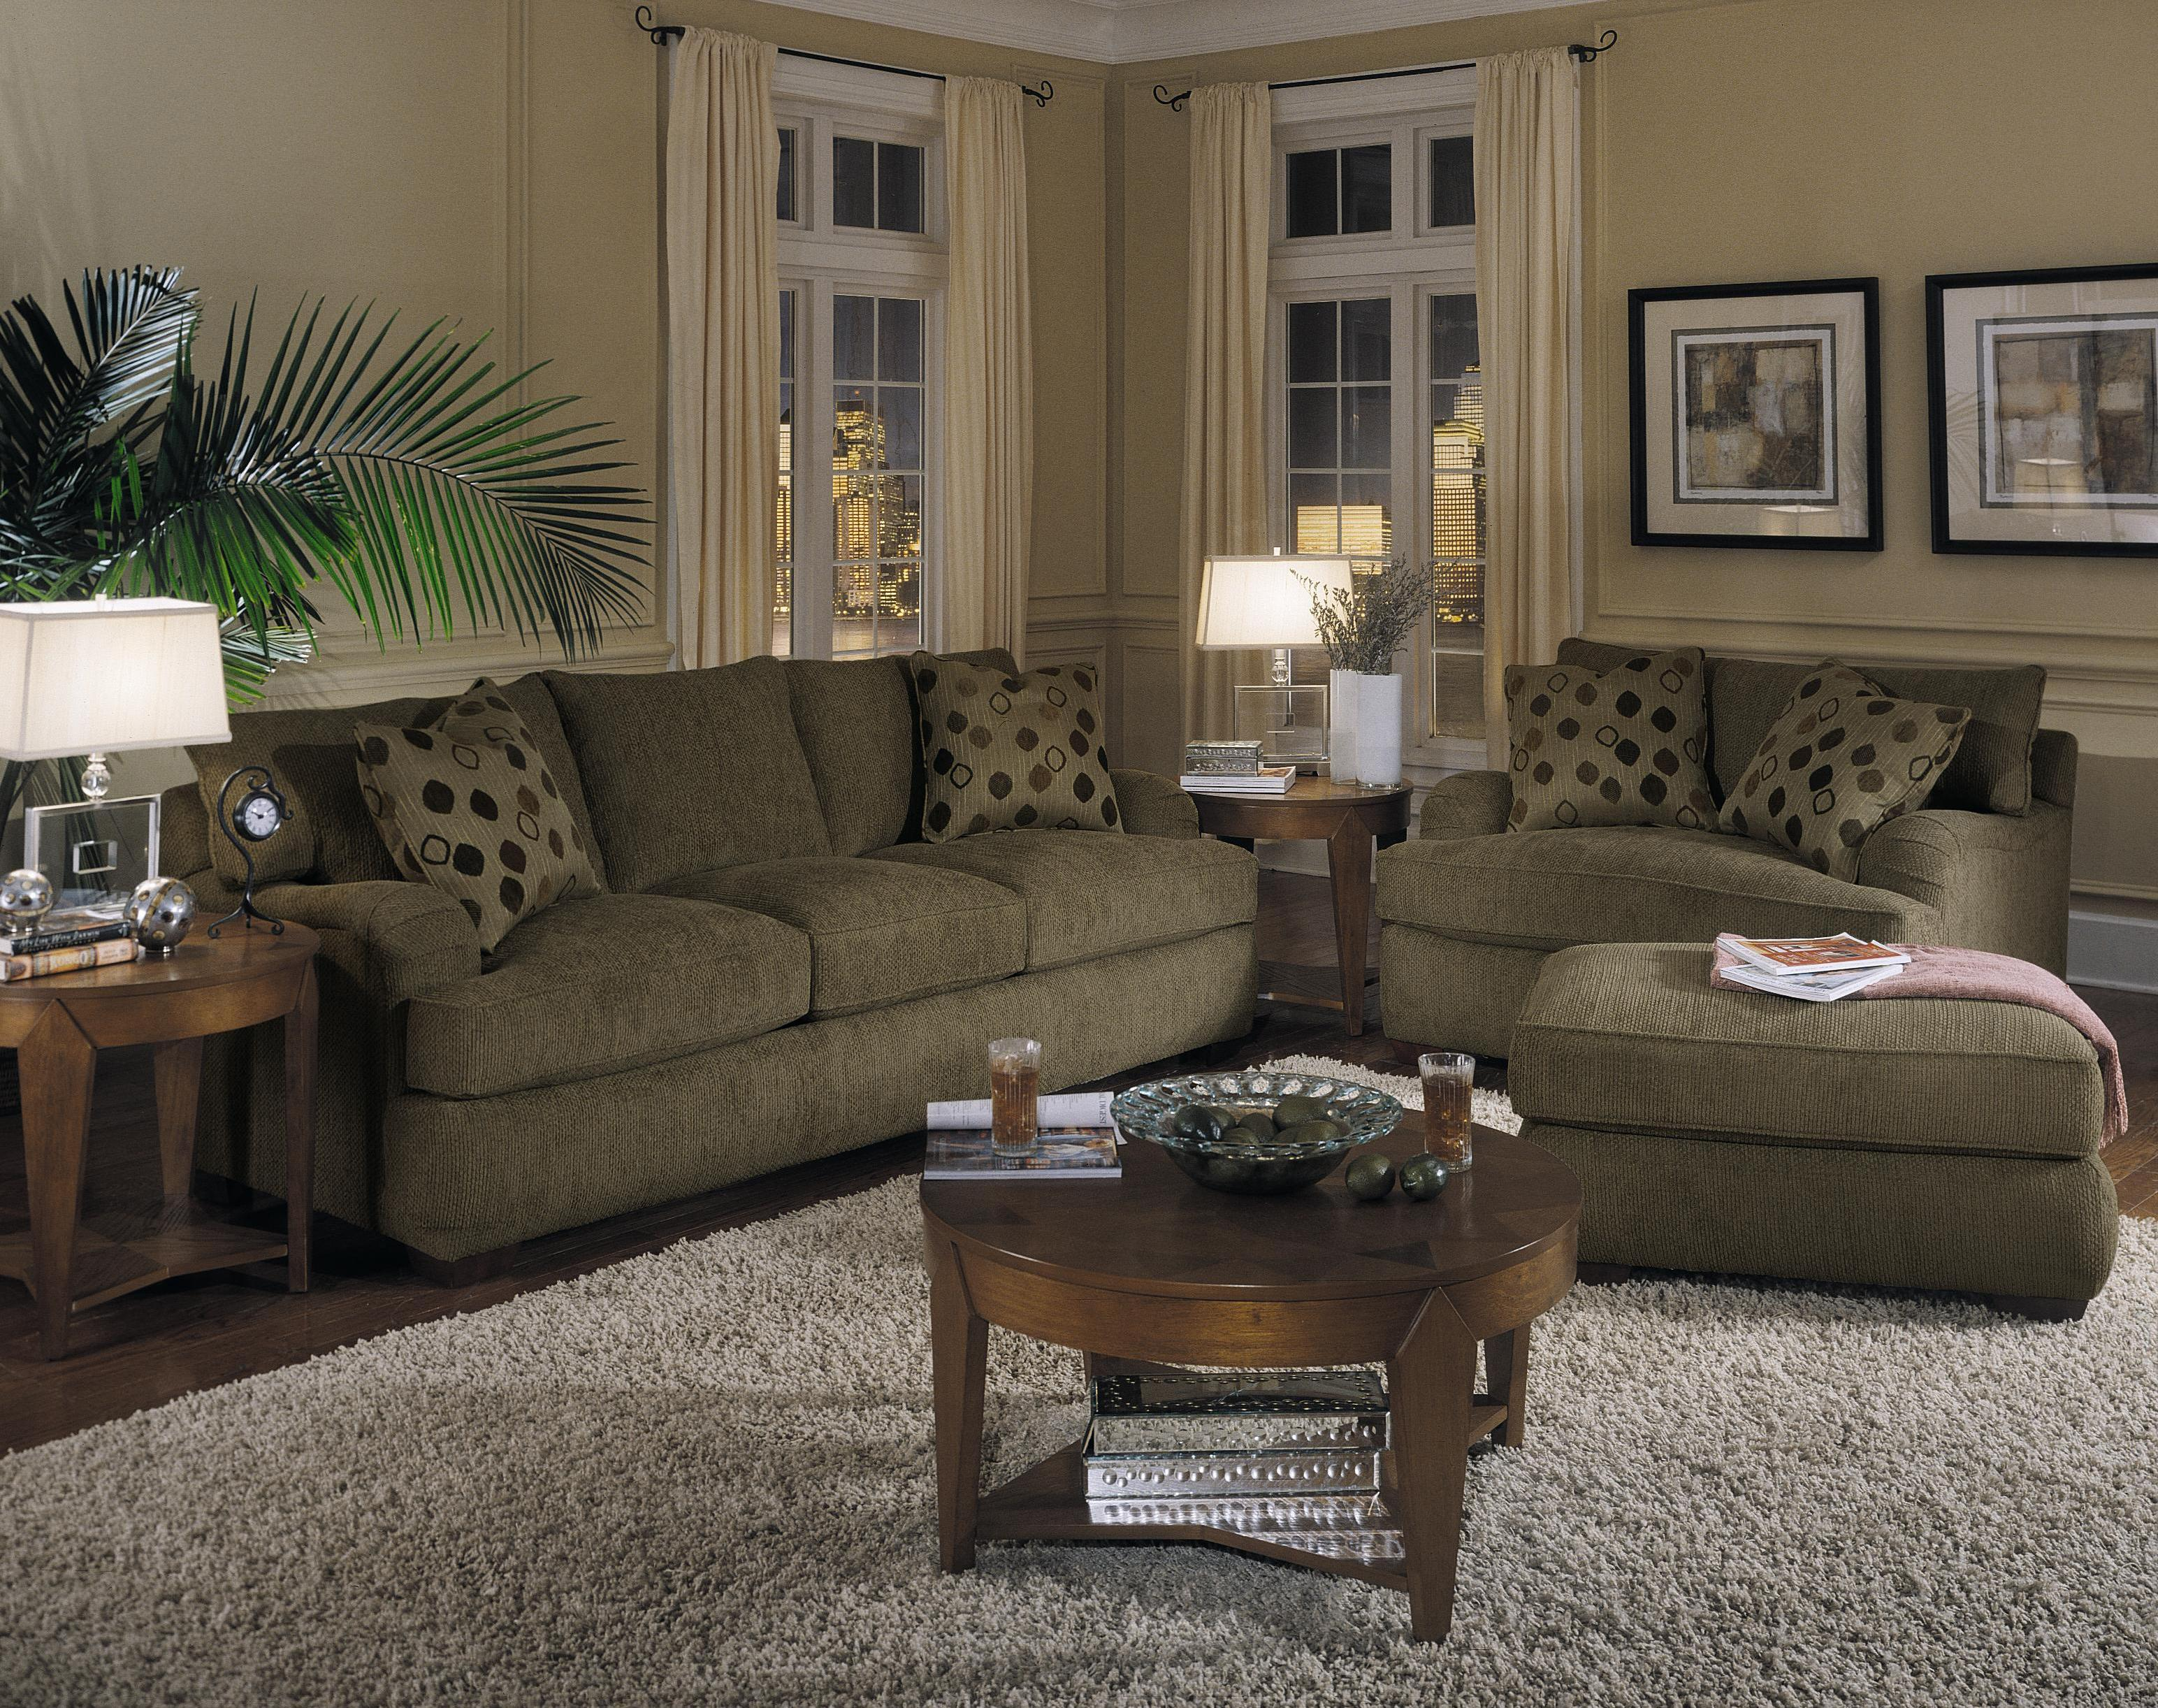 55 Klaussner Vaughn Living Room Group Tan 17 Besten  : collections2Fklaussner2Fvaughnsof lss b5 from elivingroomfurniture.com size 3088 x 2444 jpeg 1444kB